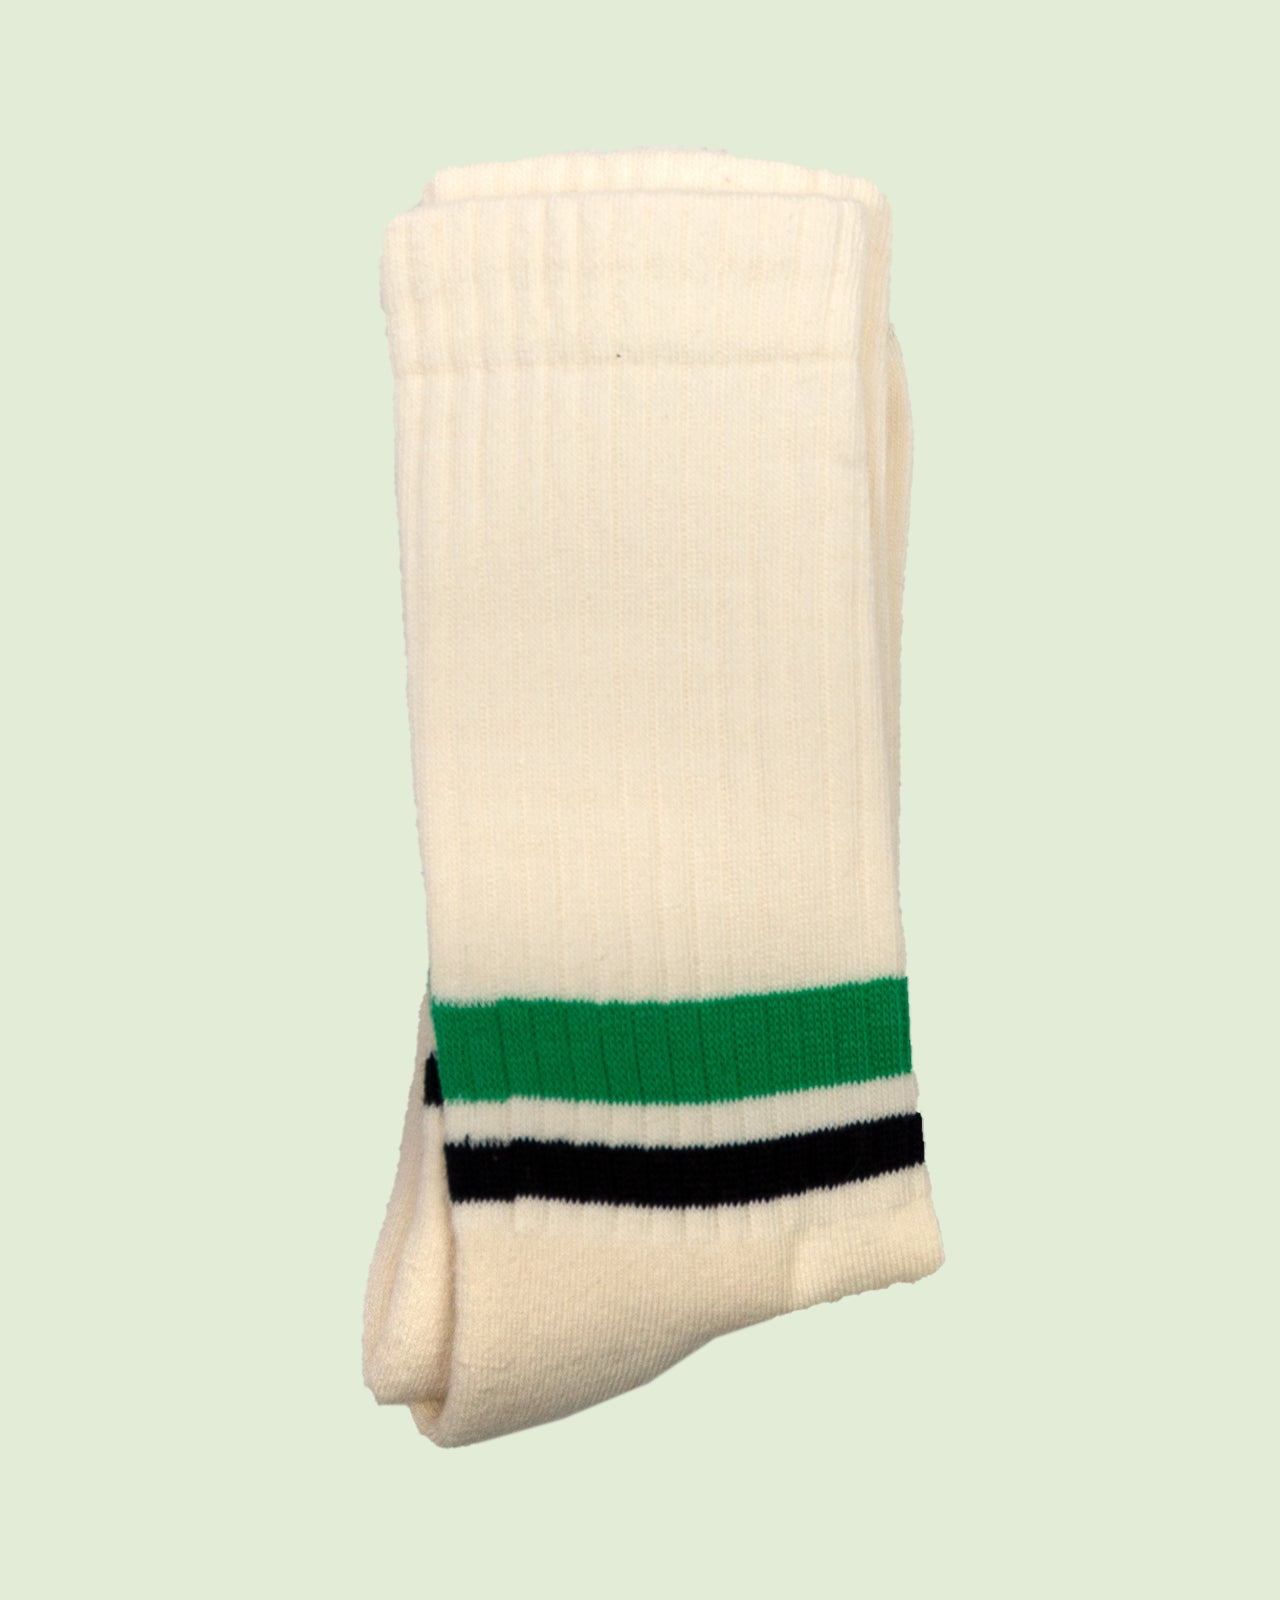 Heritage 9.1 Amarcord Black and Green Stripes Socks